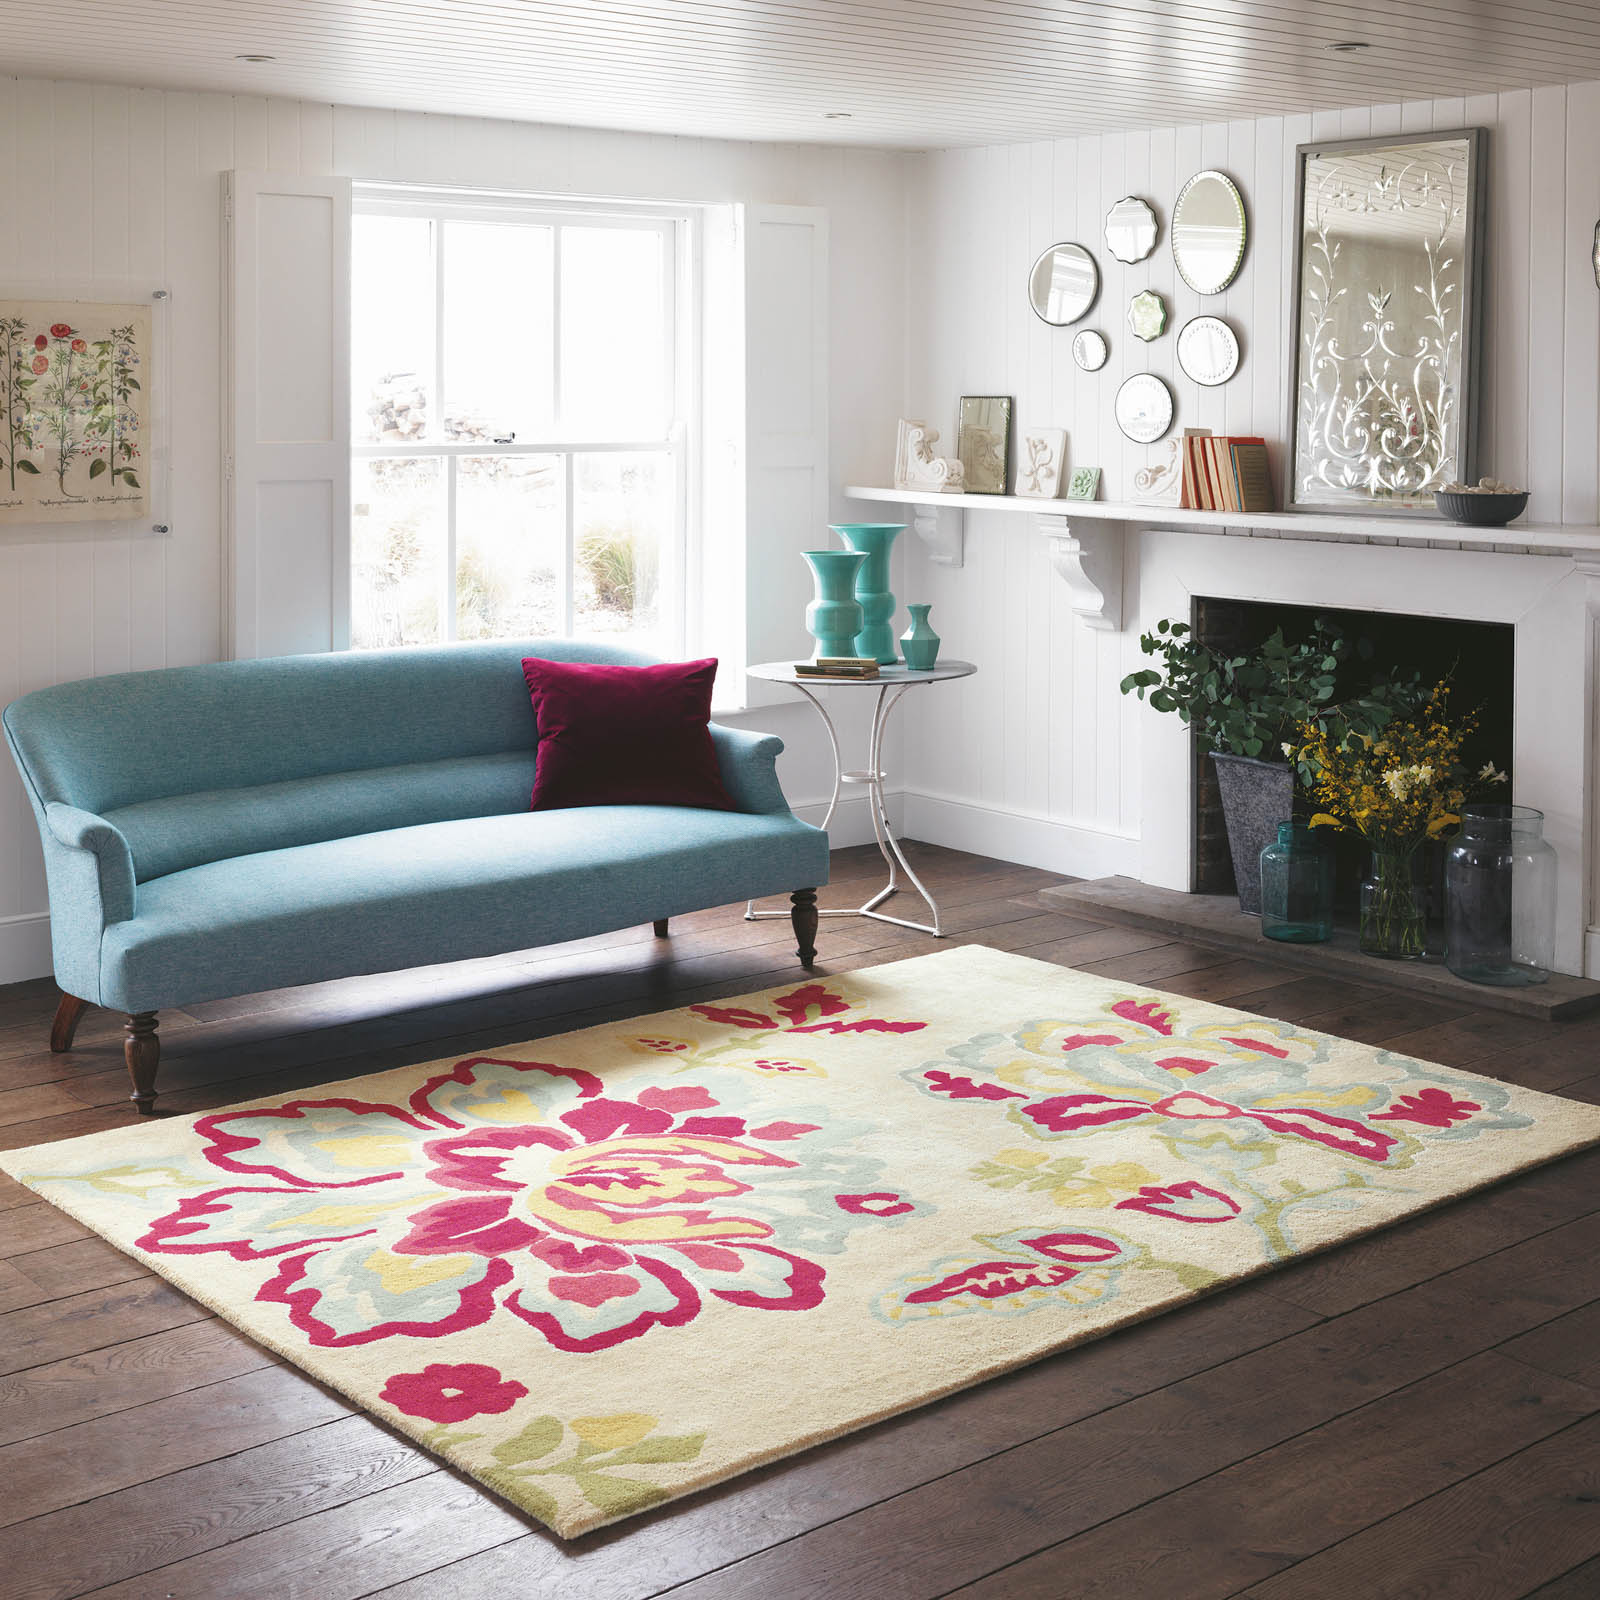 Mother's Day gift, Sanderson Angelique Rugs 46500 in Rose